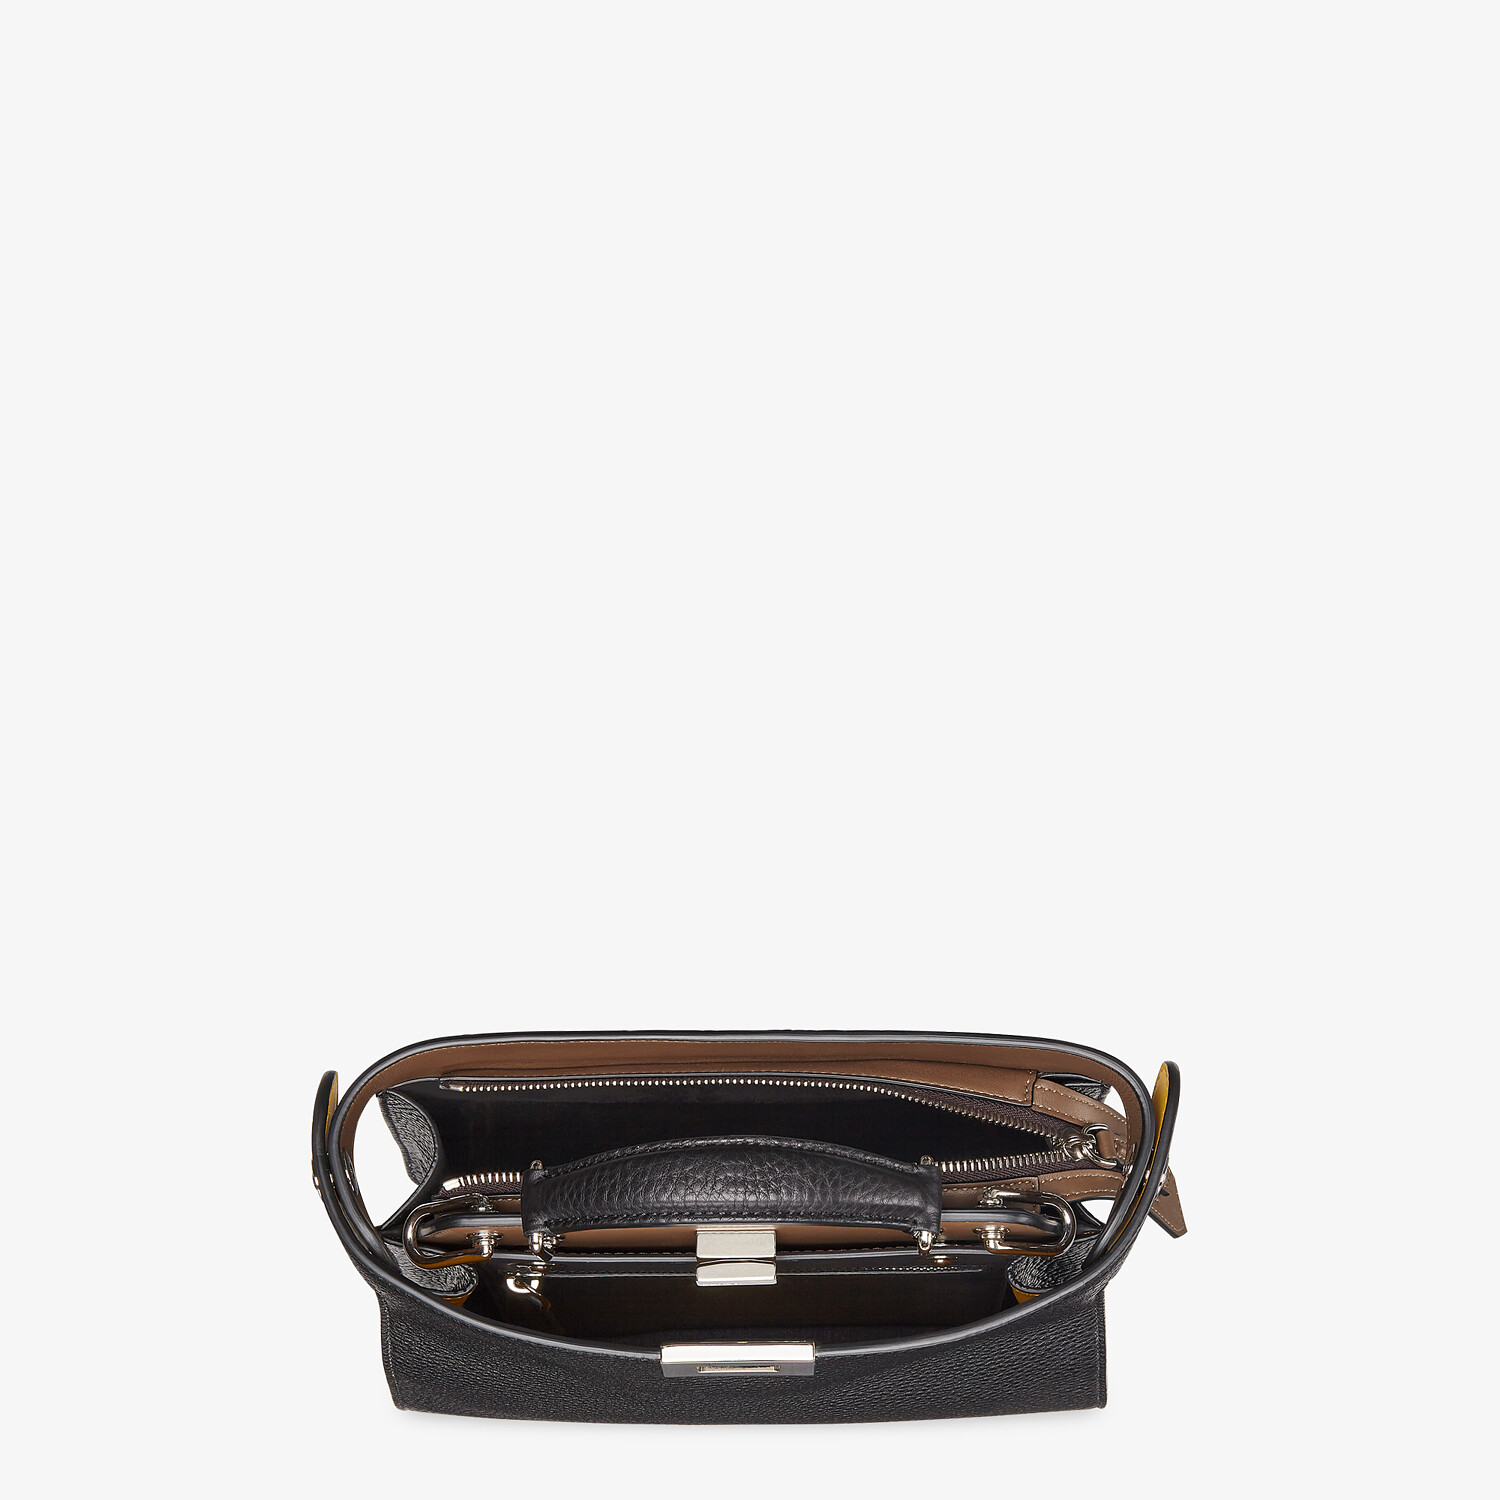 FENDI PEEKABOO ISEEU MINI - Black leather bag - view 5 detail